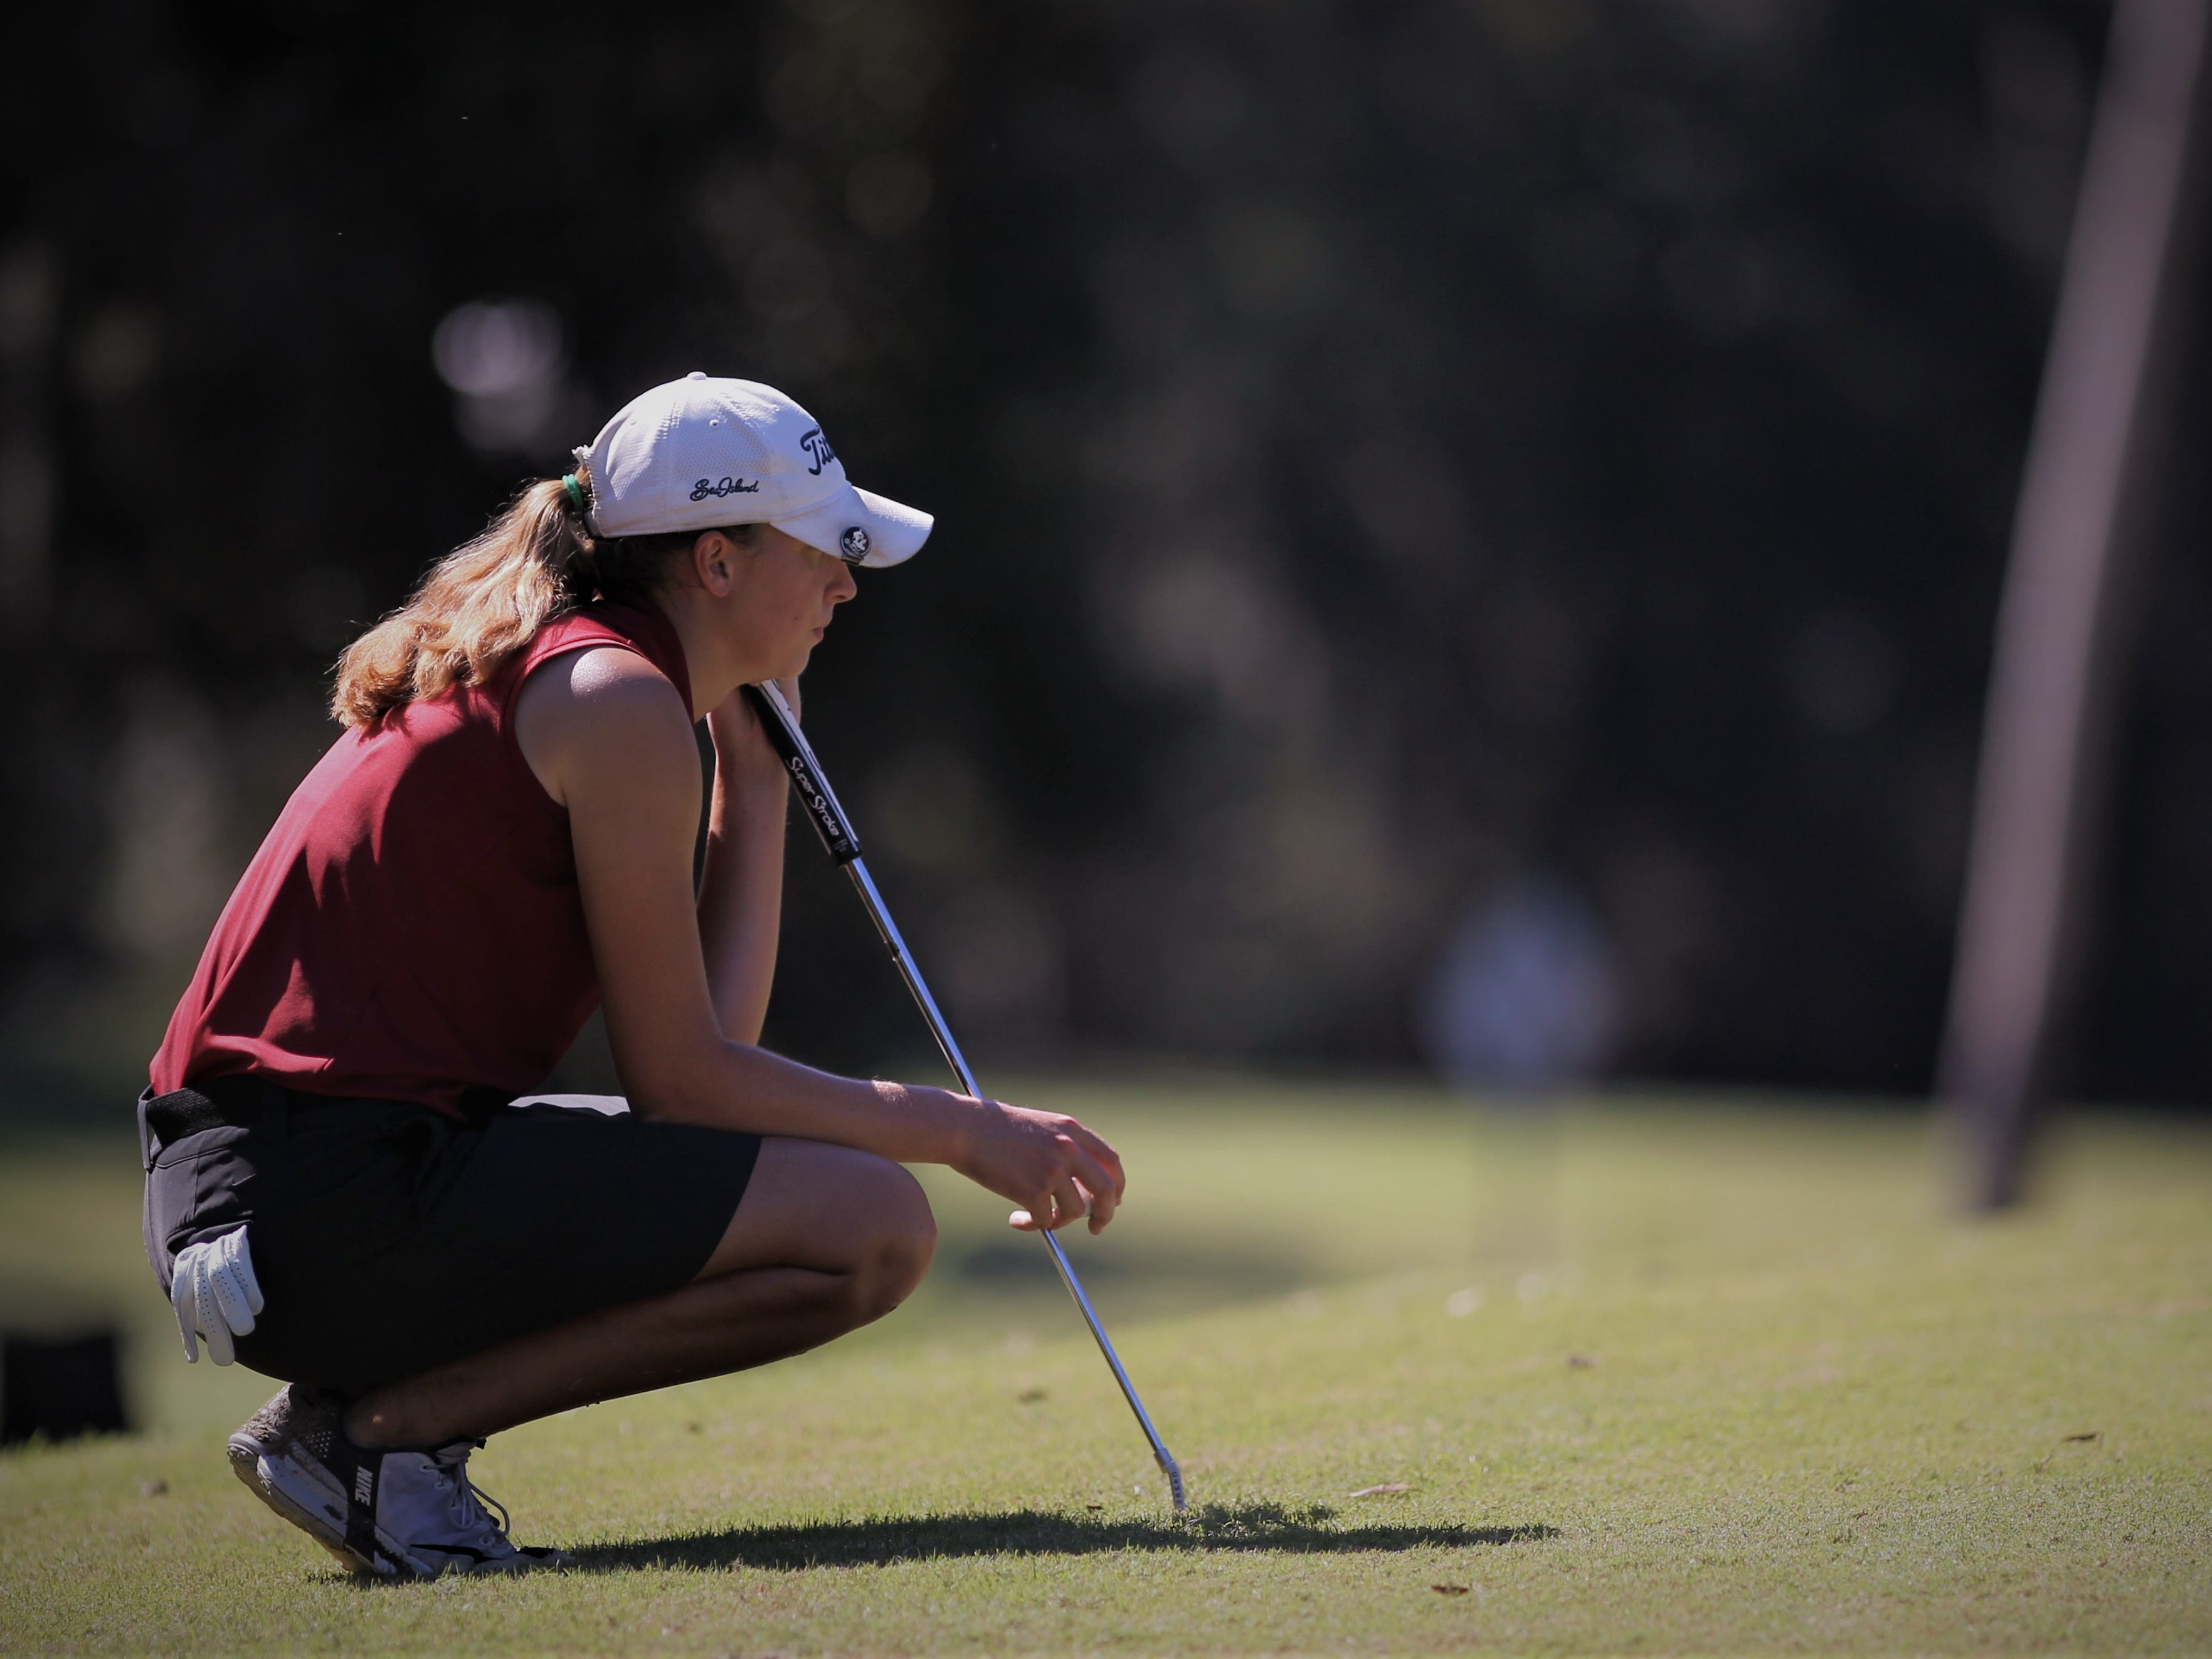 Chiles senior Mickela Helms waits to putt during the girls golf Panhandle Invitational at Killearn Country Club, Oct. 4, 2018.